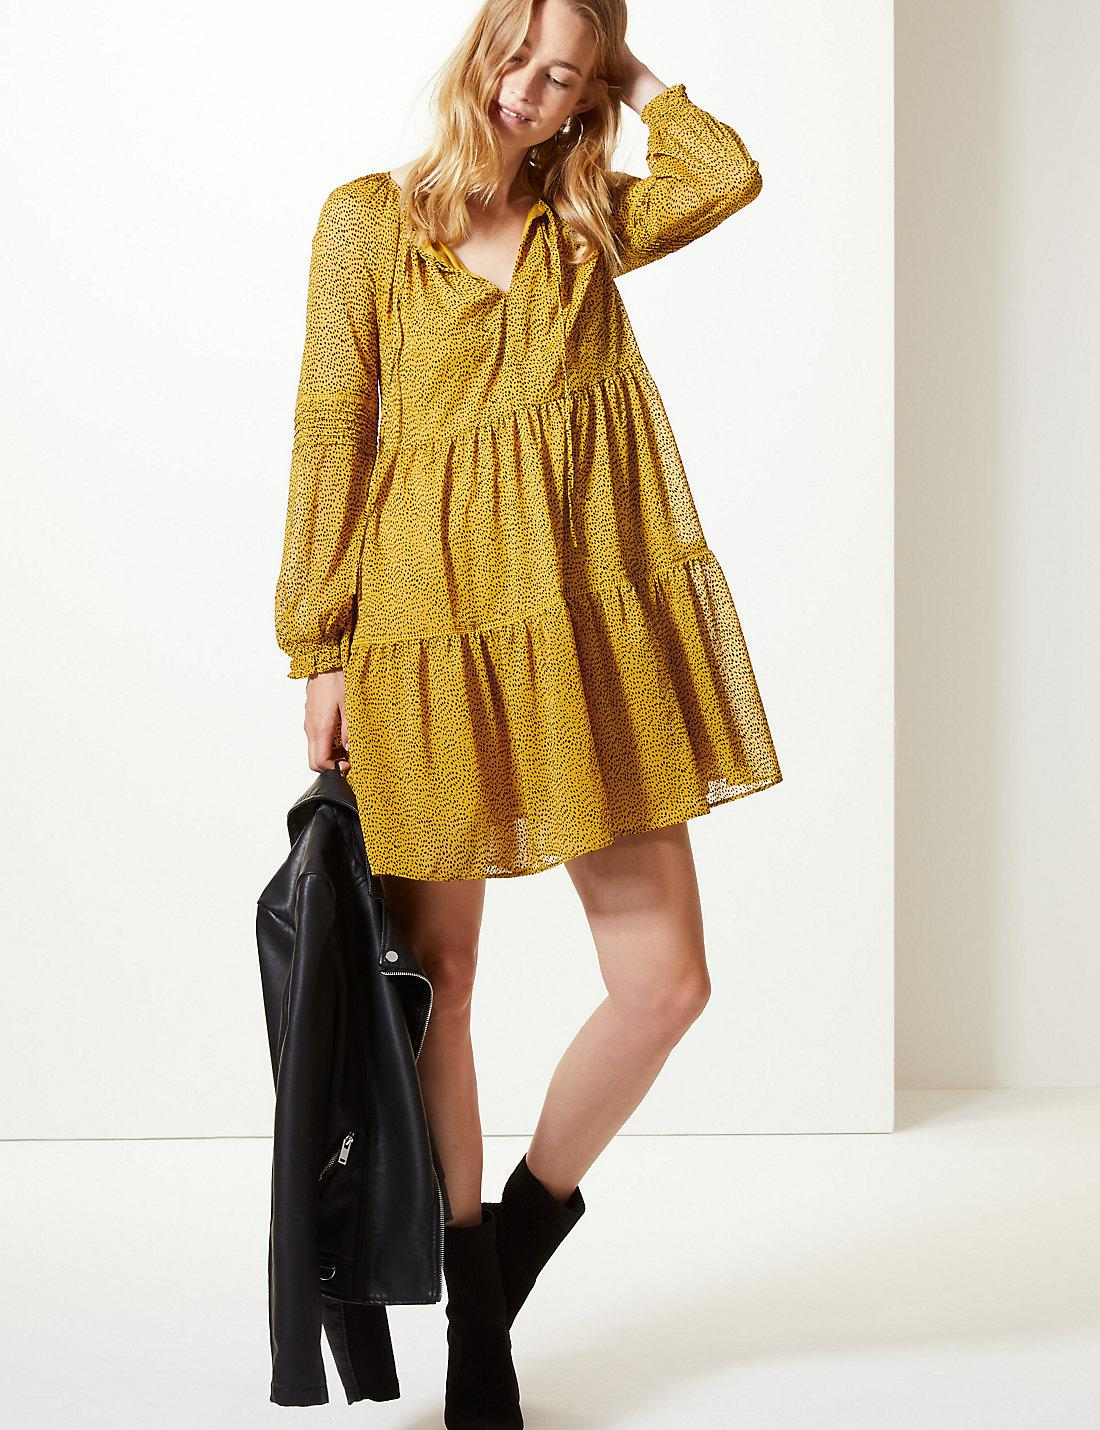 ac63574246 Lyst - Marks & Spencer Spotted Drop Waist Mini Dress in Yellow